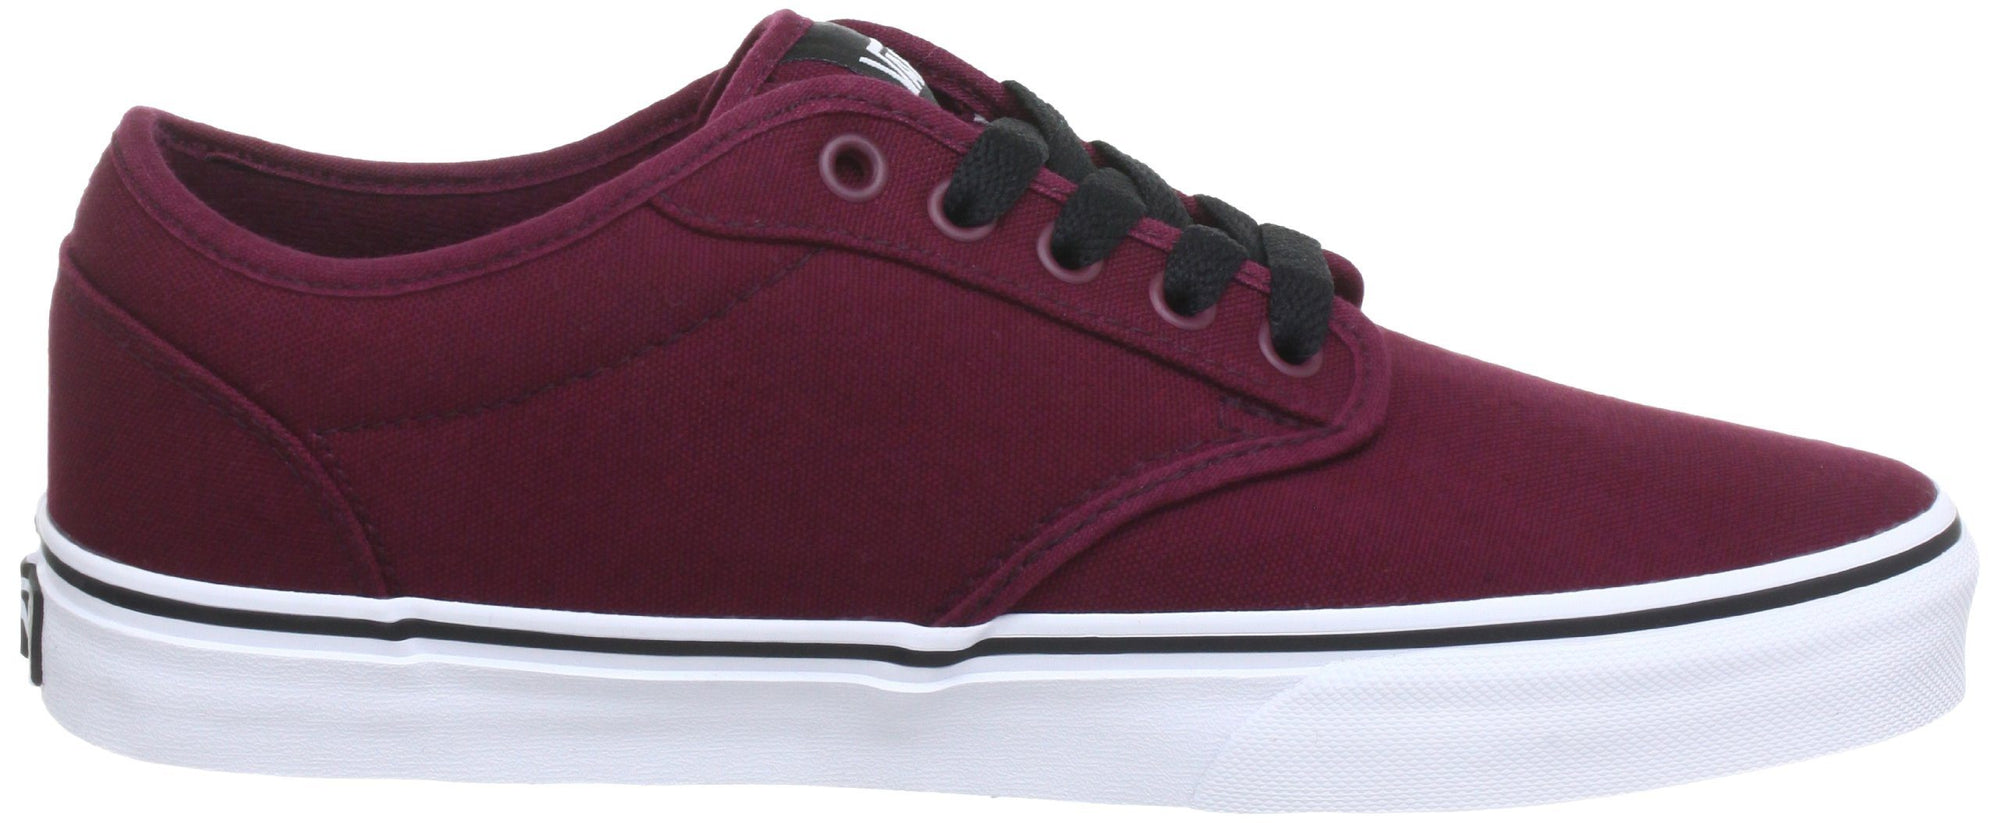 Vans Men's Atwood Canvas Shoes - Ox Blood/White SP-Footwear-Mens Vans